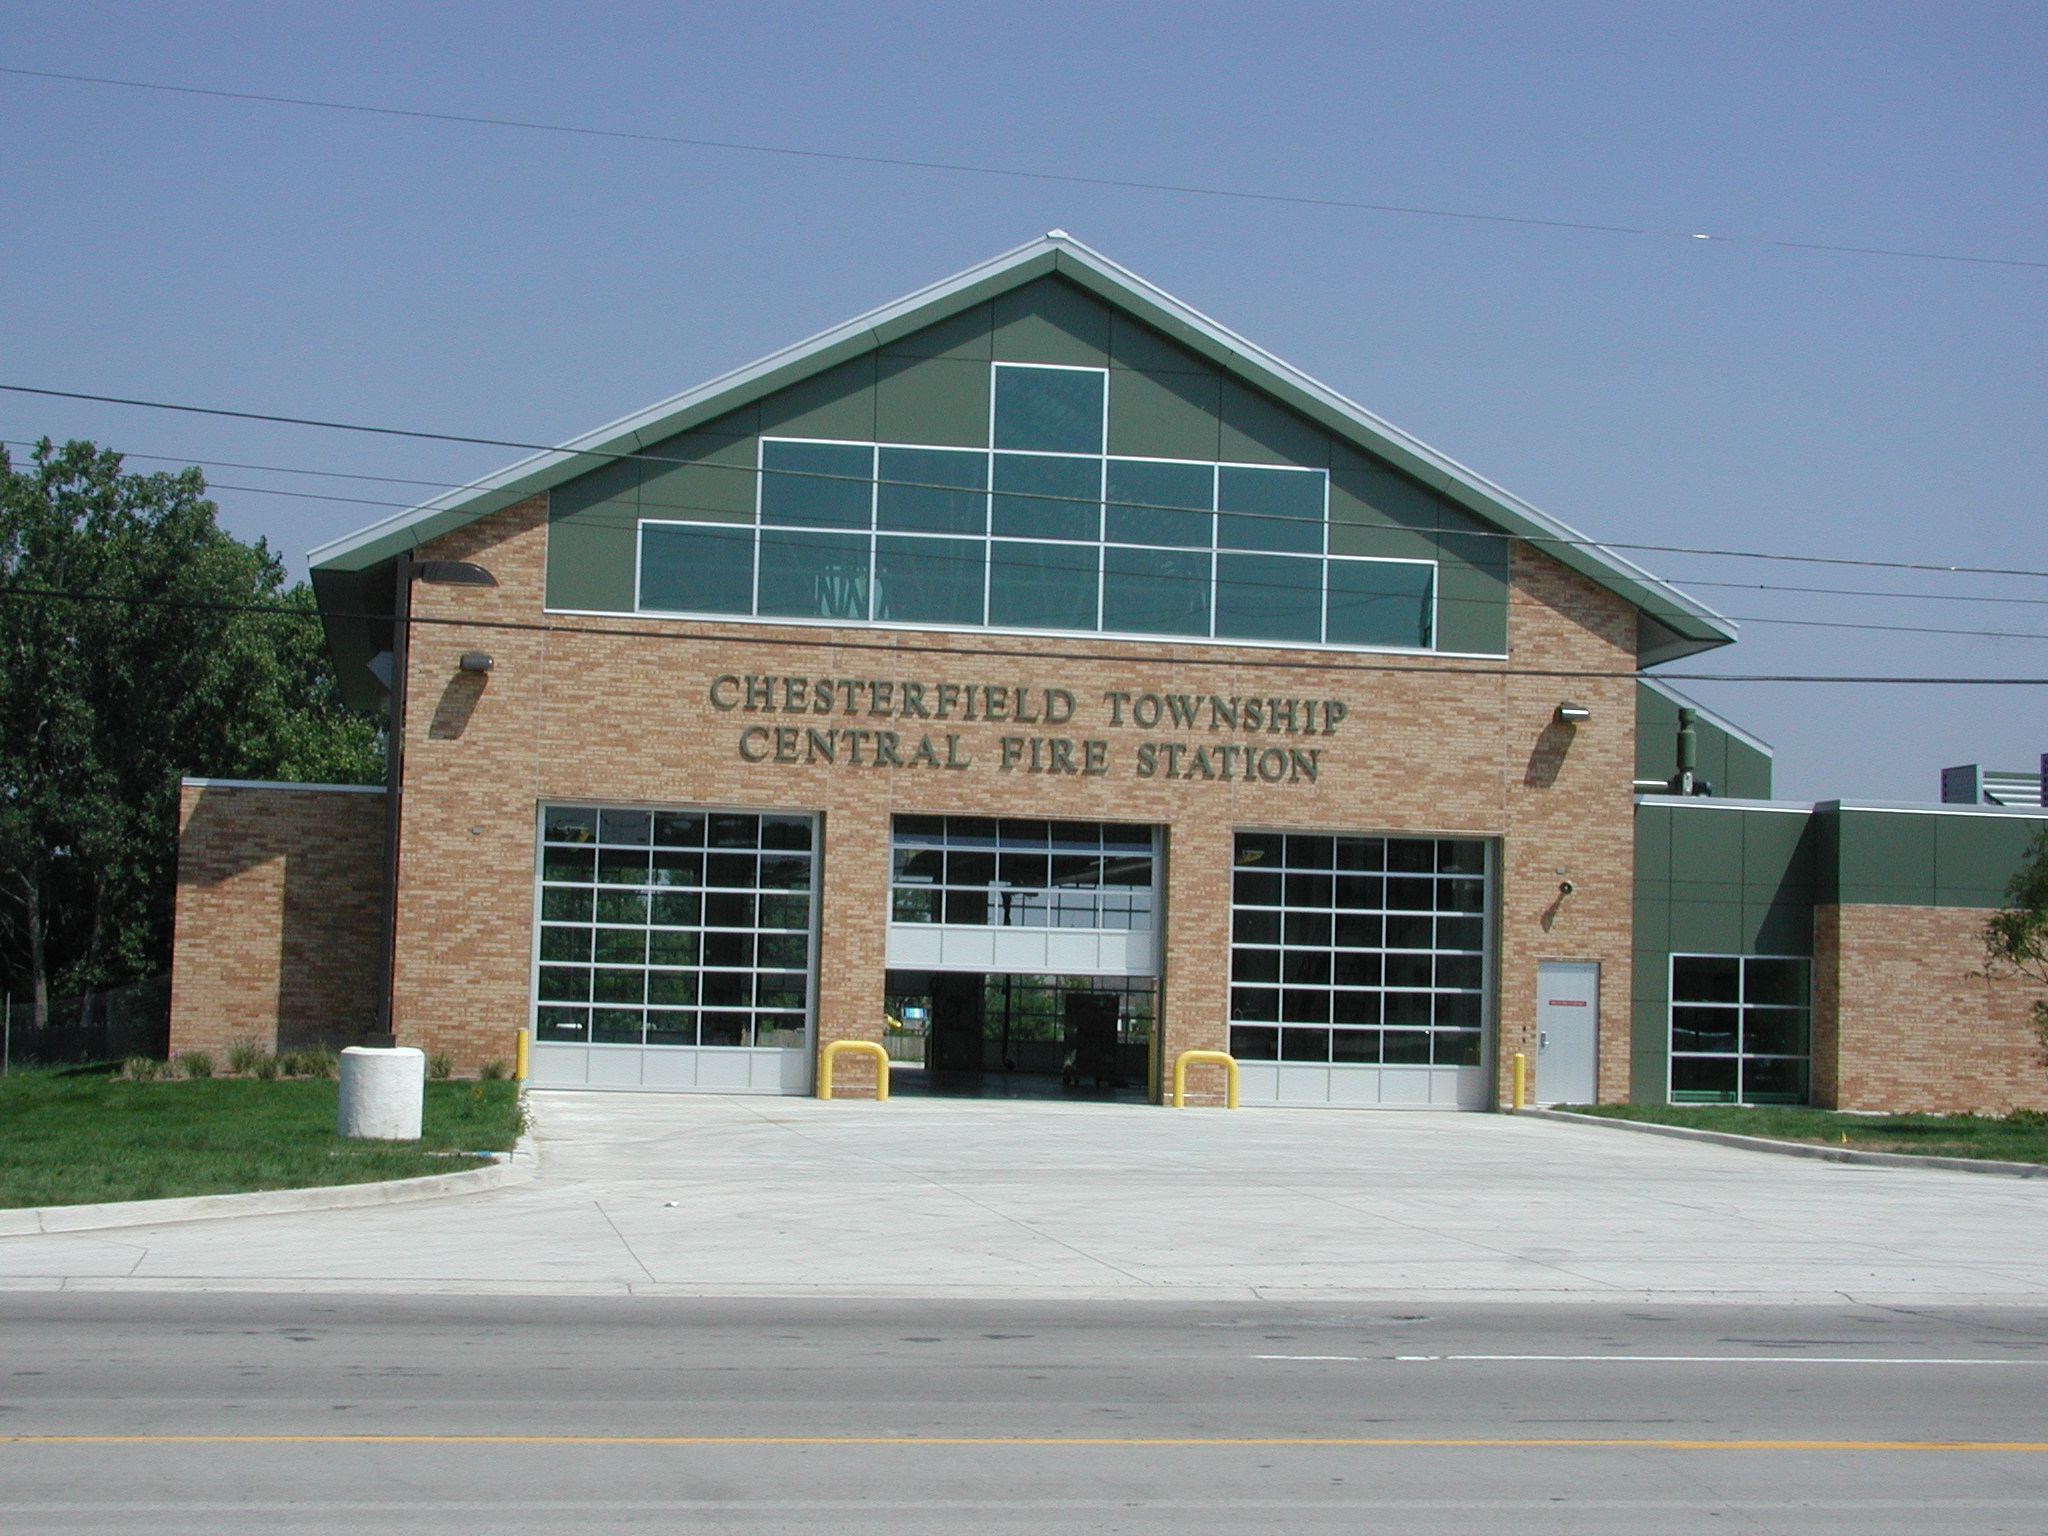 Fire Department Headquarters & Central Fire Station, Chesterfield Township, MI